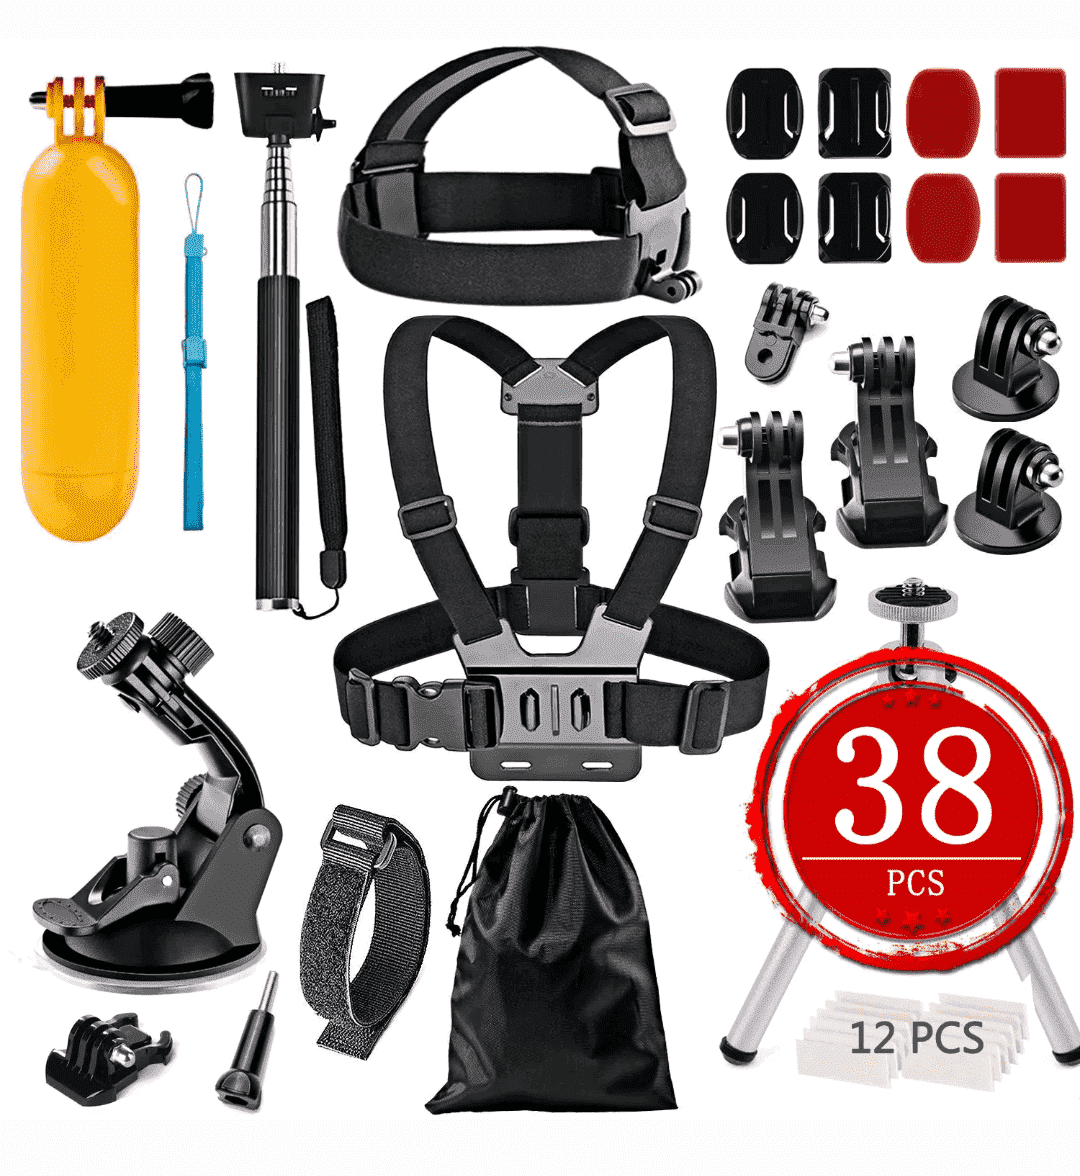 38 in 1 Accessories Kit for GoPro Hero Action Camera